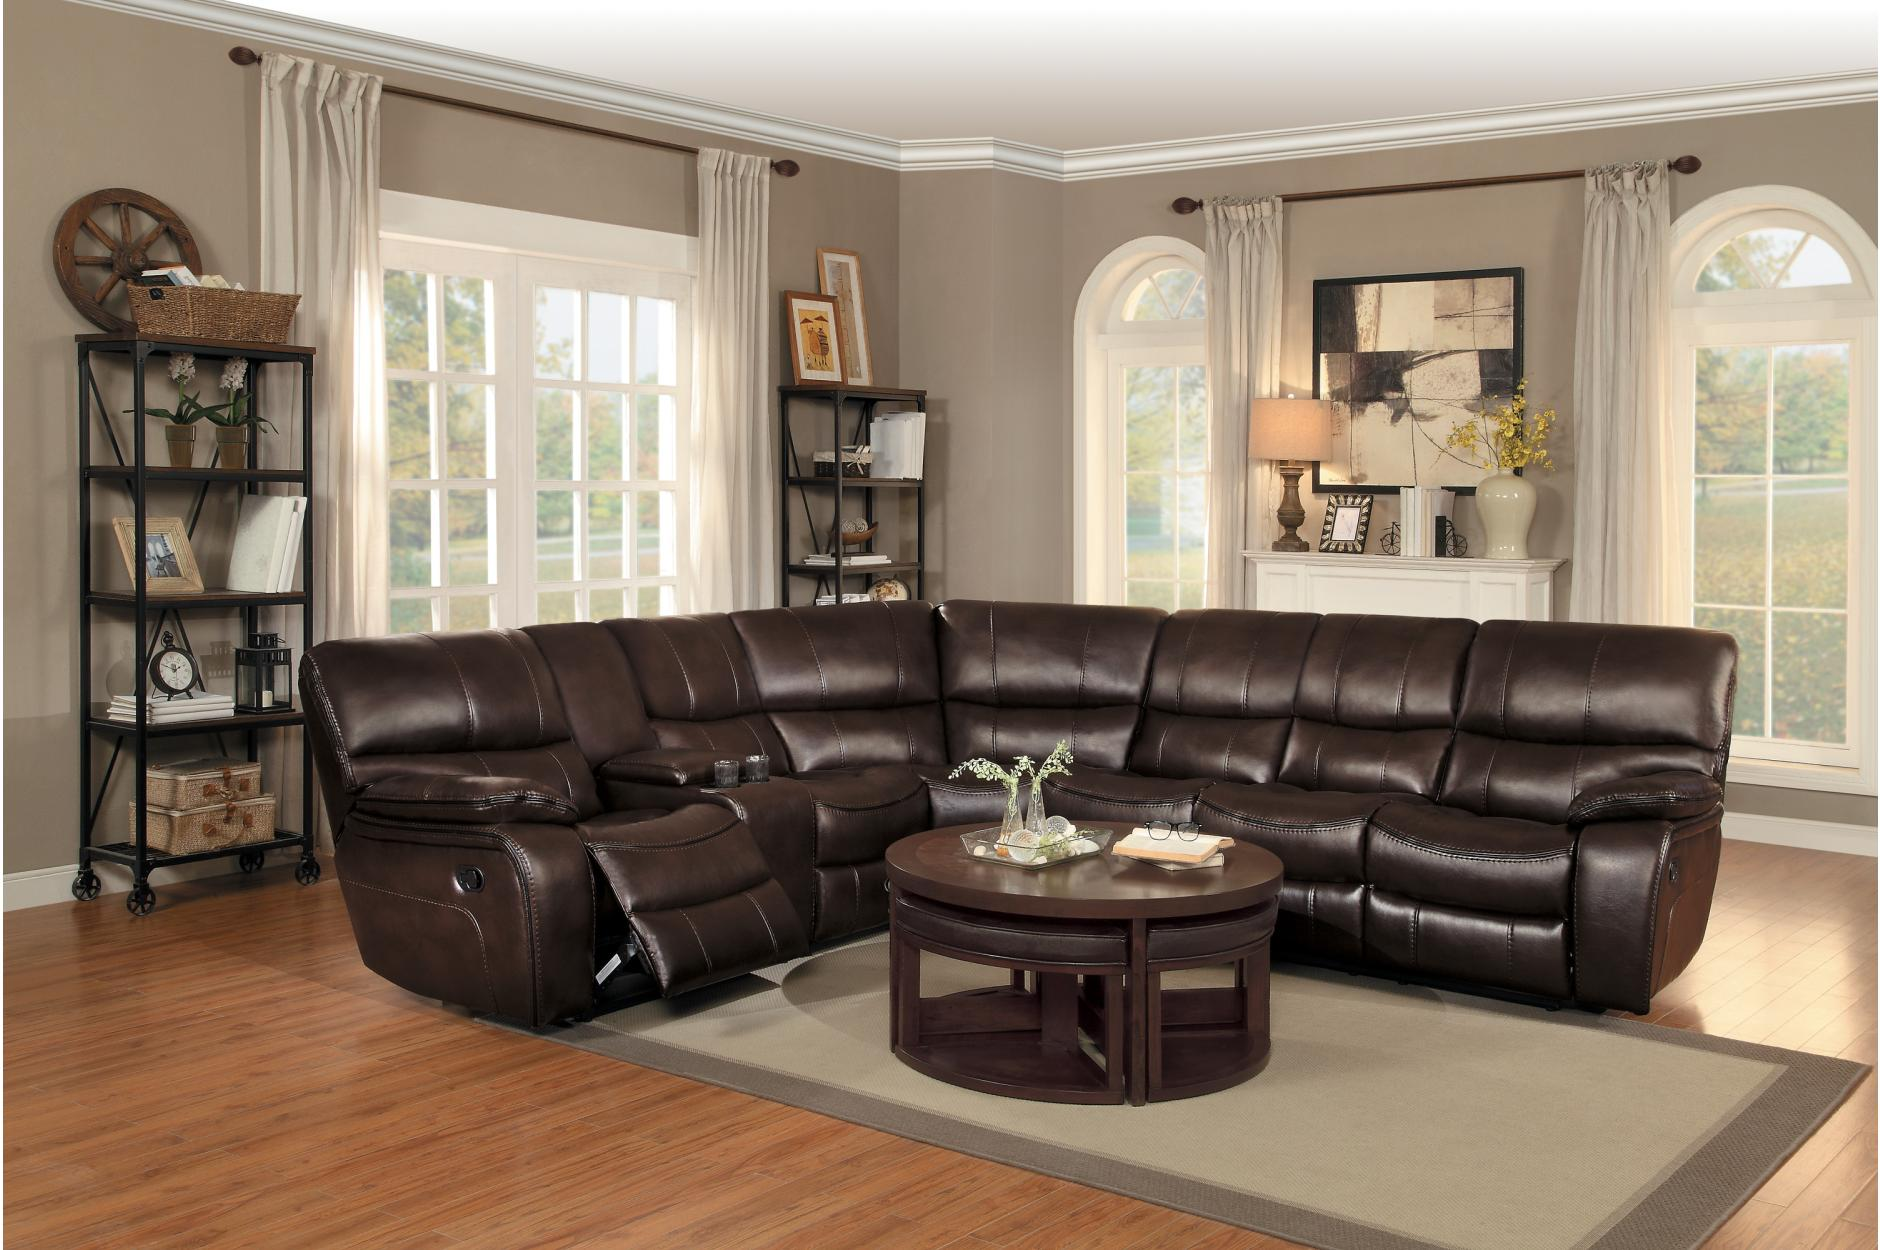 Pecos Dark Brown Leather Sectional 8480BRW by Homelegance